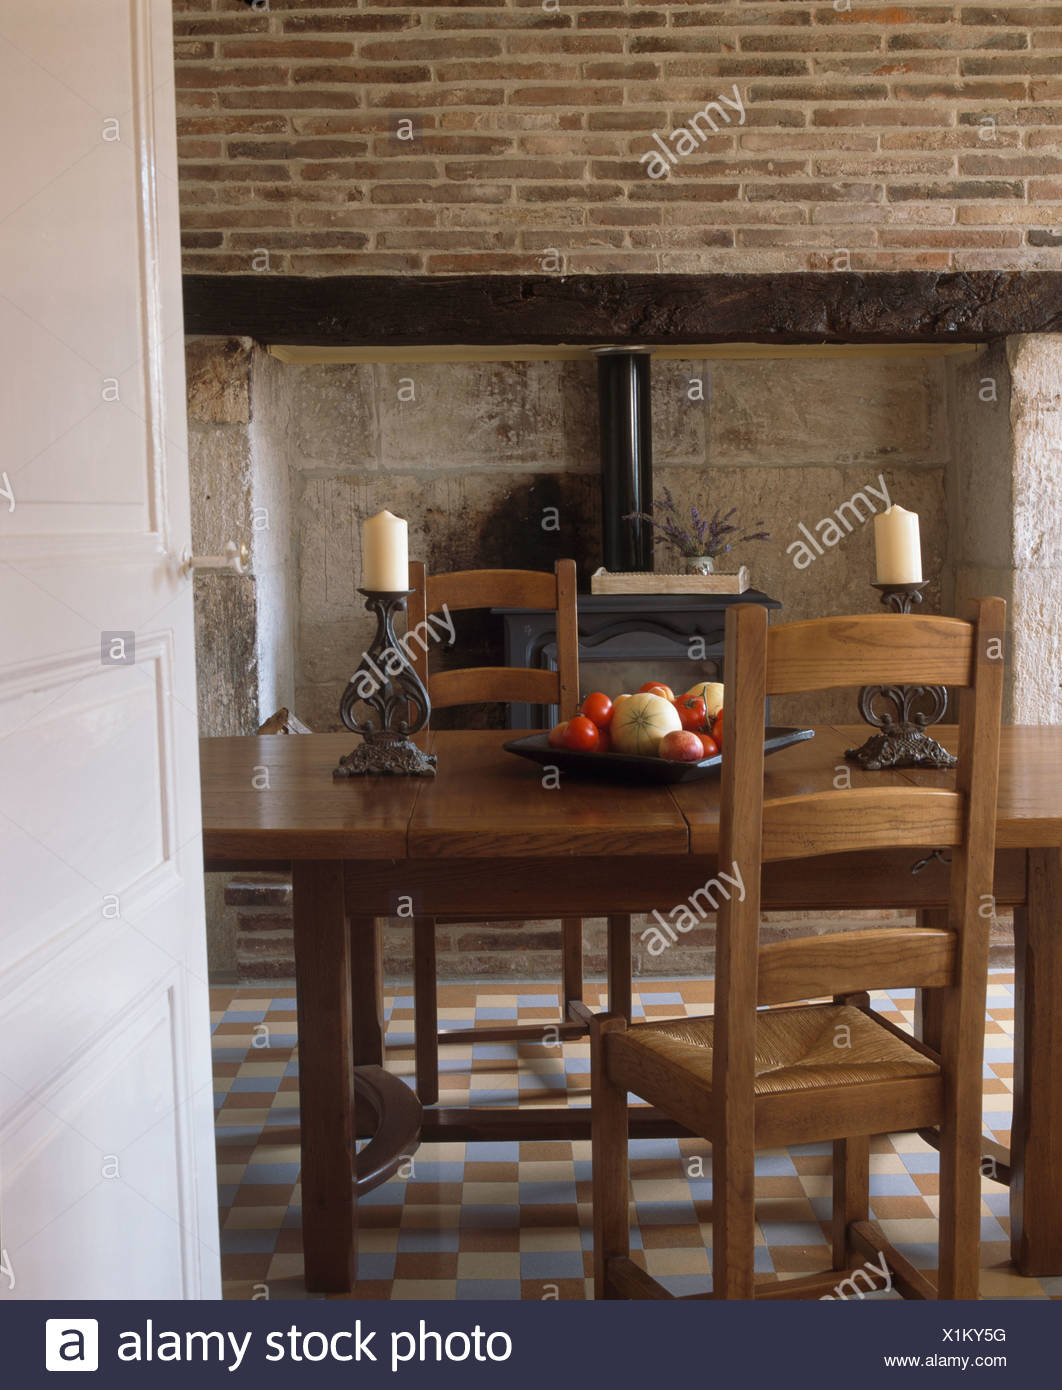 Rush Seated Ladder Back Chairs And Antique Table In French Country Dining  Room With Wood Burning Stove In The Fireplace